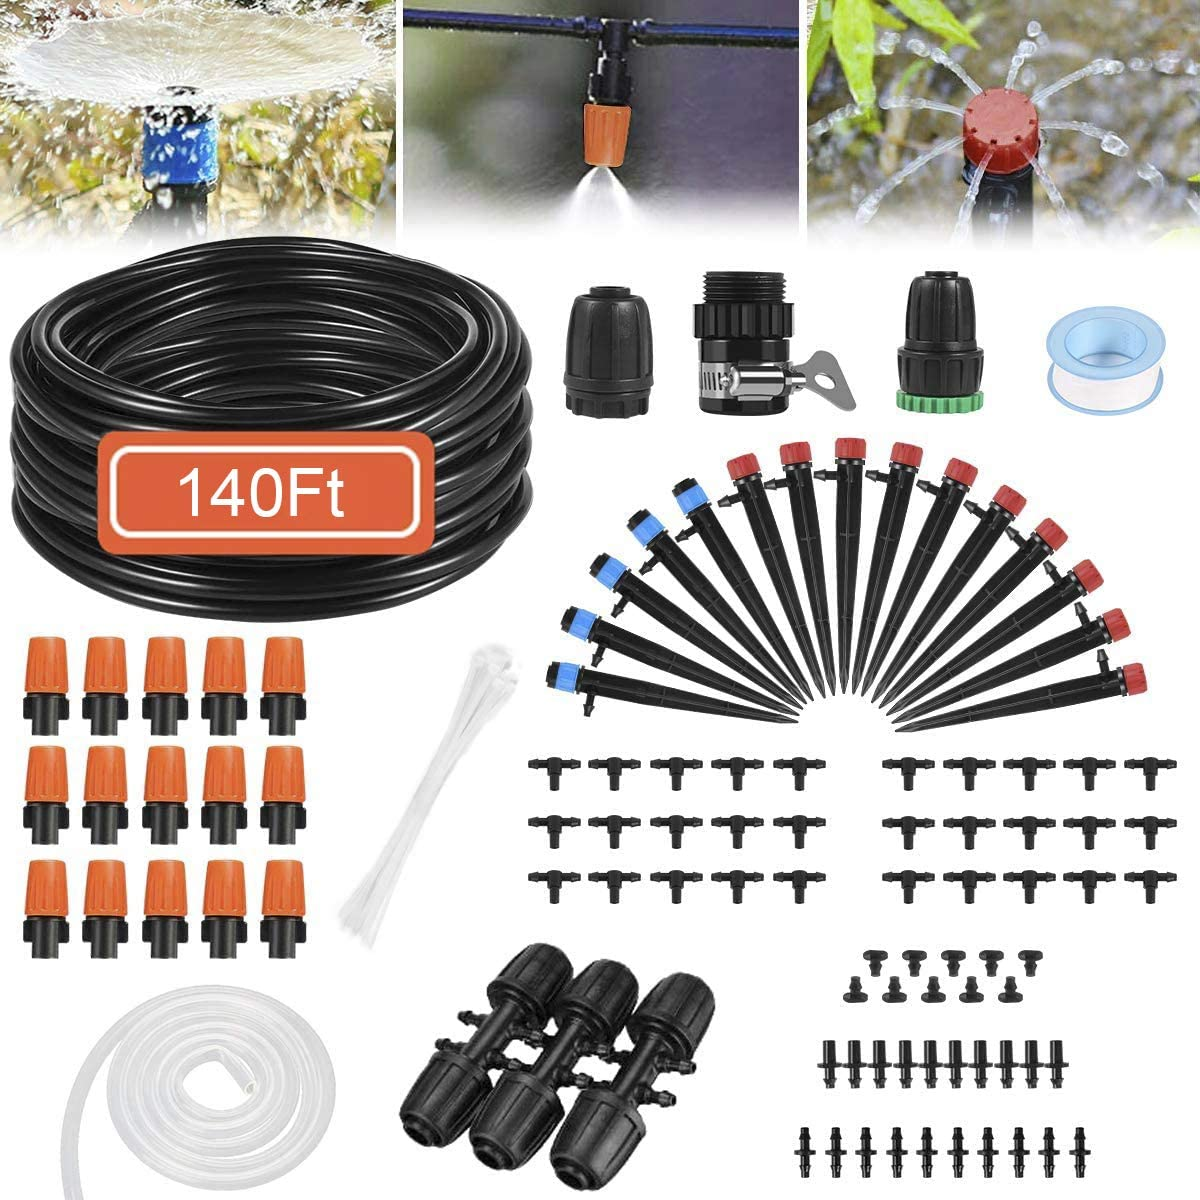 Drip Irrigation System, 140 Feet WateringSystem with 1/4